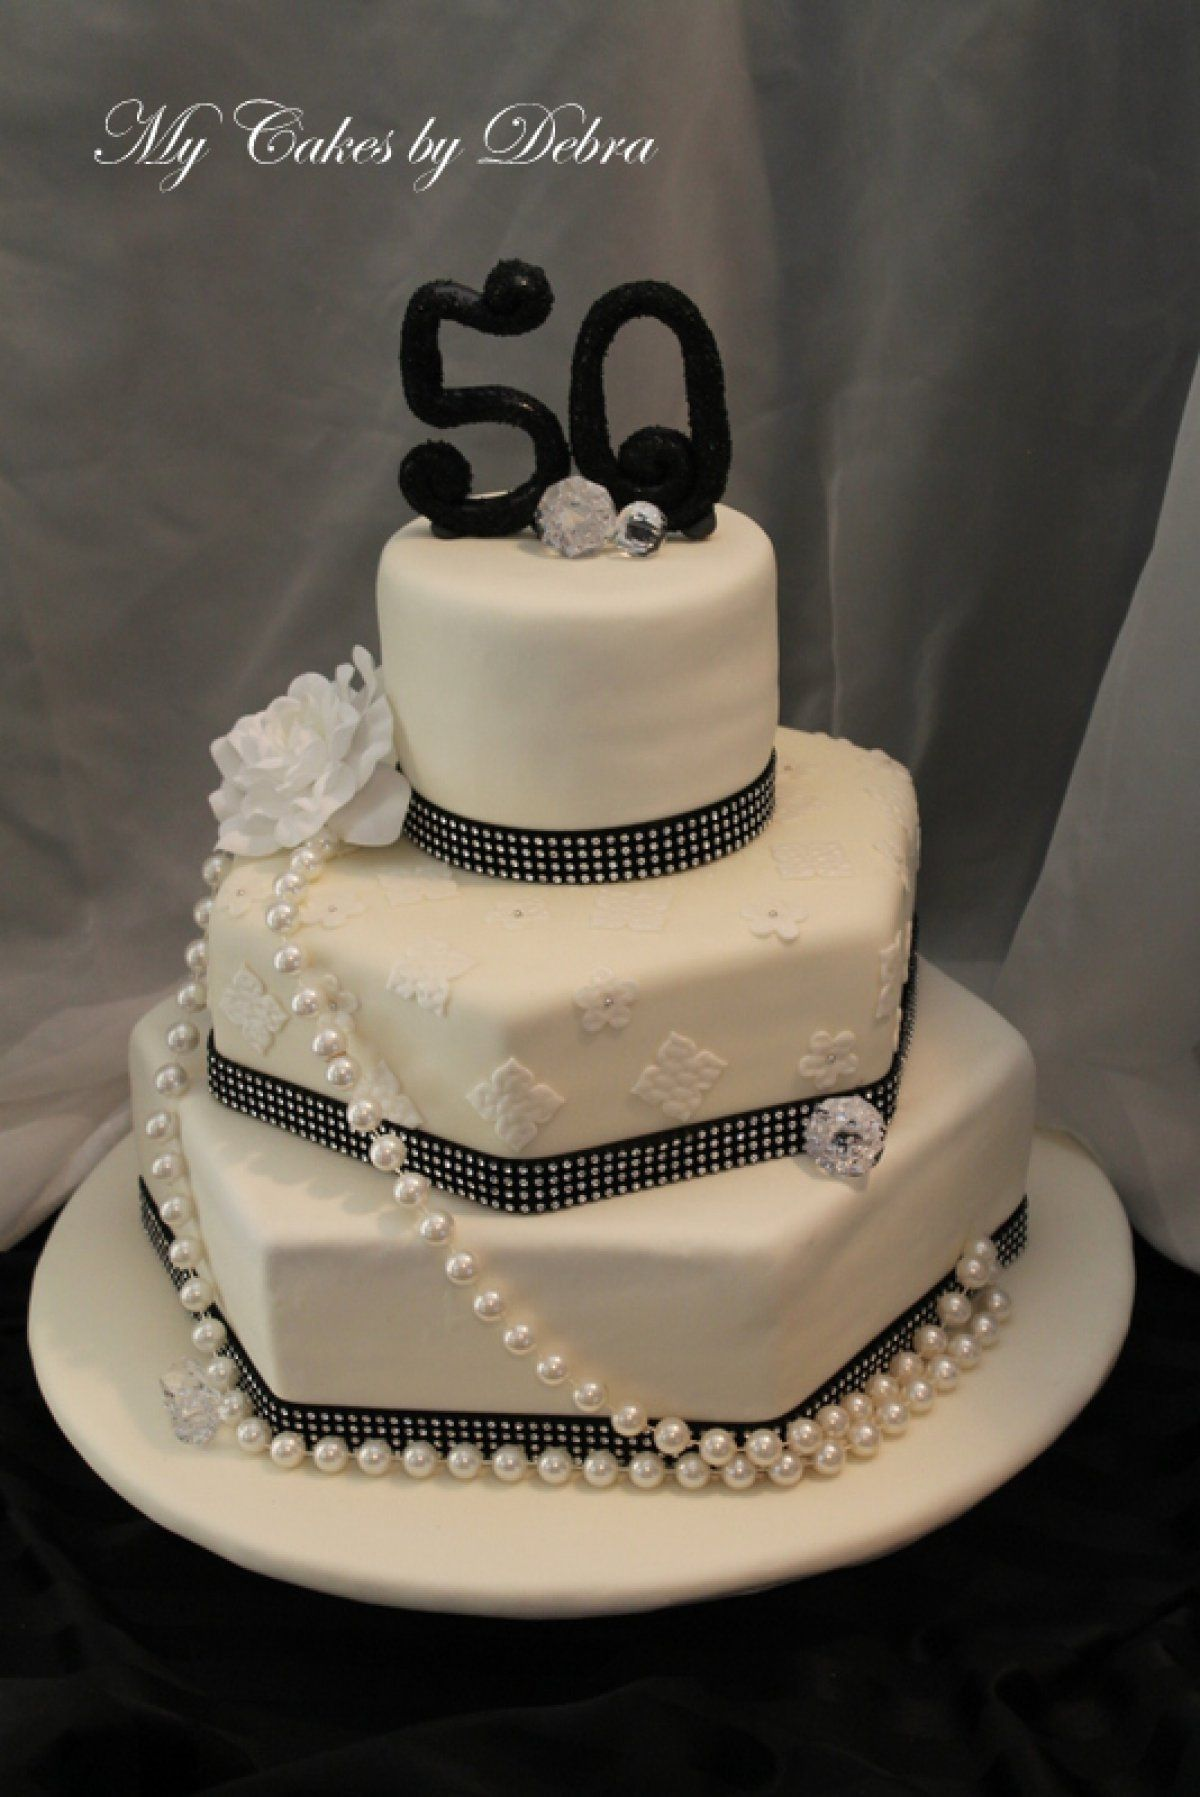 Cake Ideas For 50th Birthday Male : Fabulous 50th Birthday Cake Ideas For Men All Unique ...